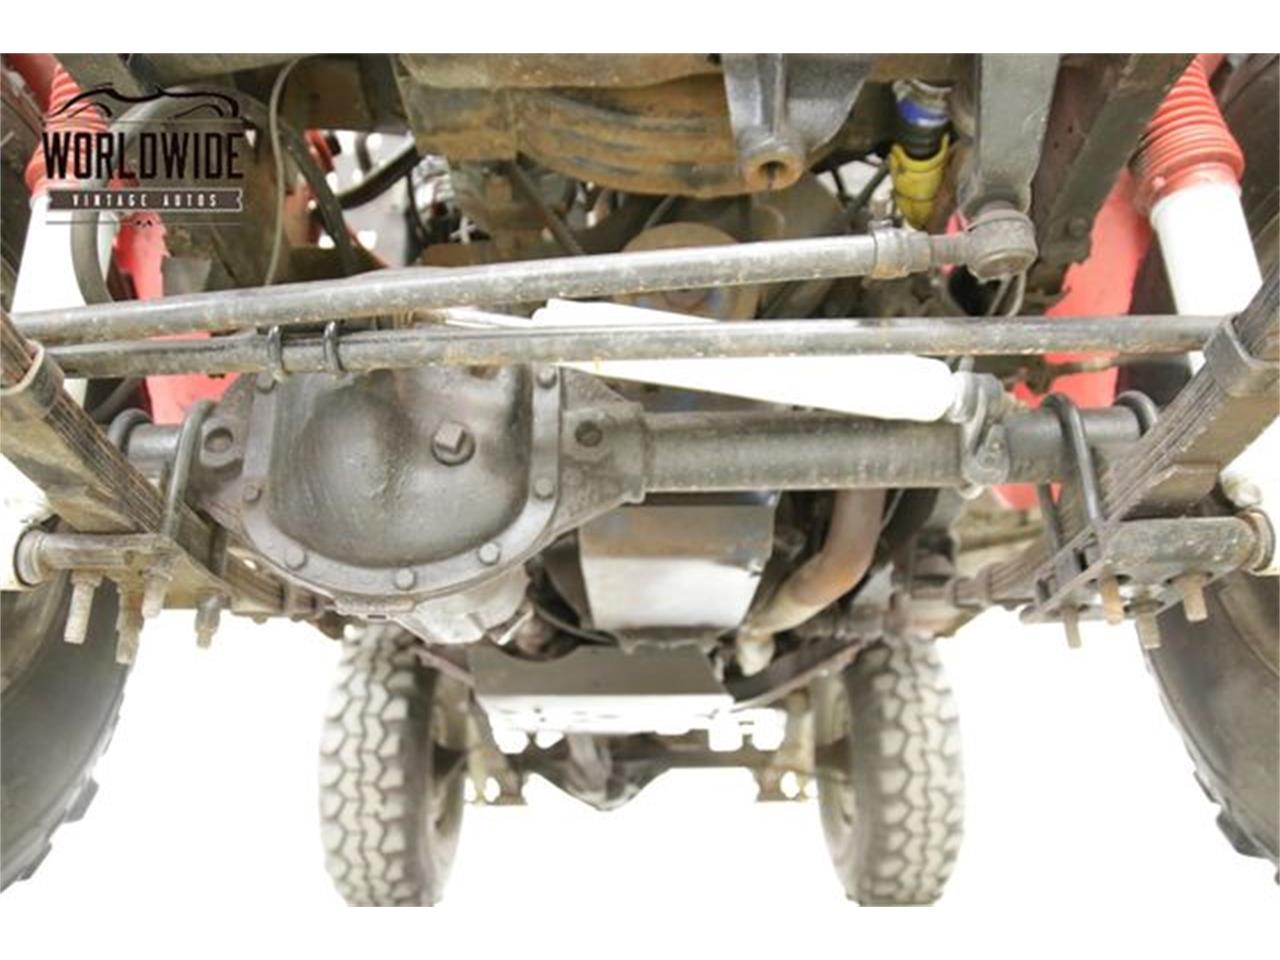 Large Picture of 1962 Willys Jeep - $12,900.00 Offered by Worldwide Vintage Autos - PSGE